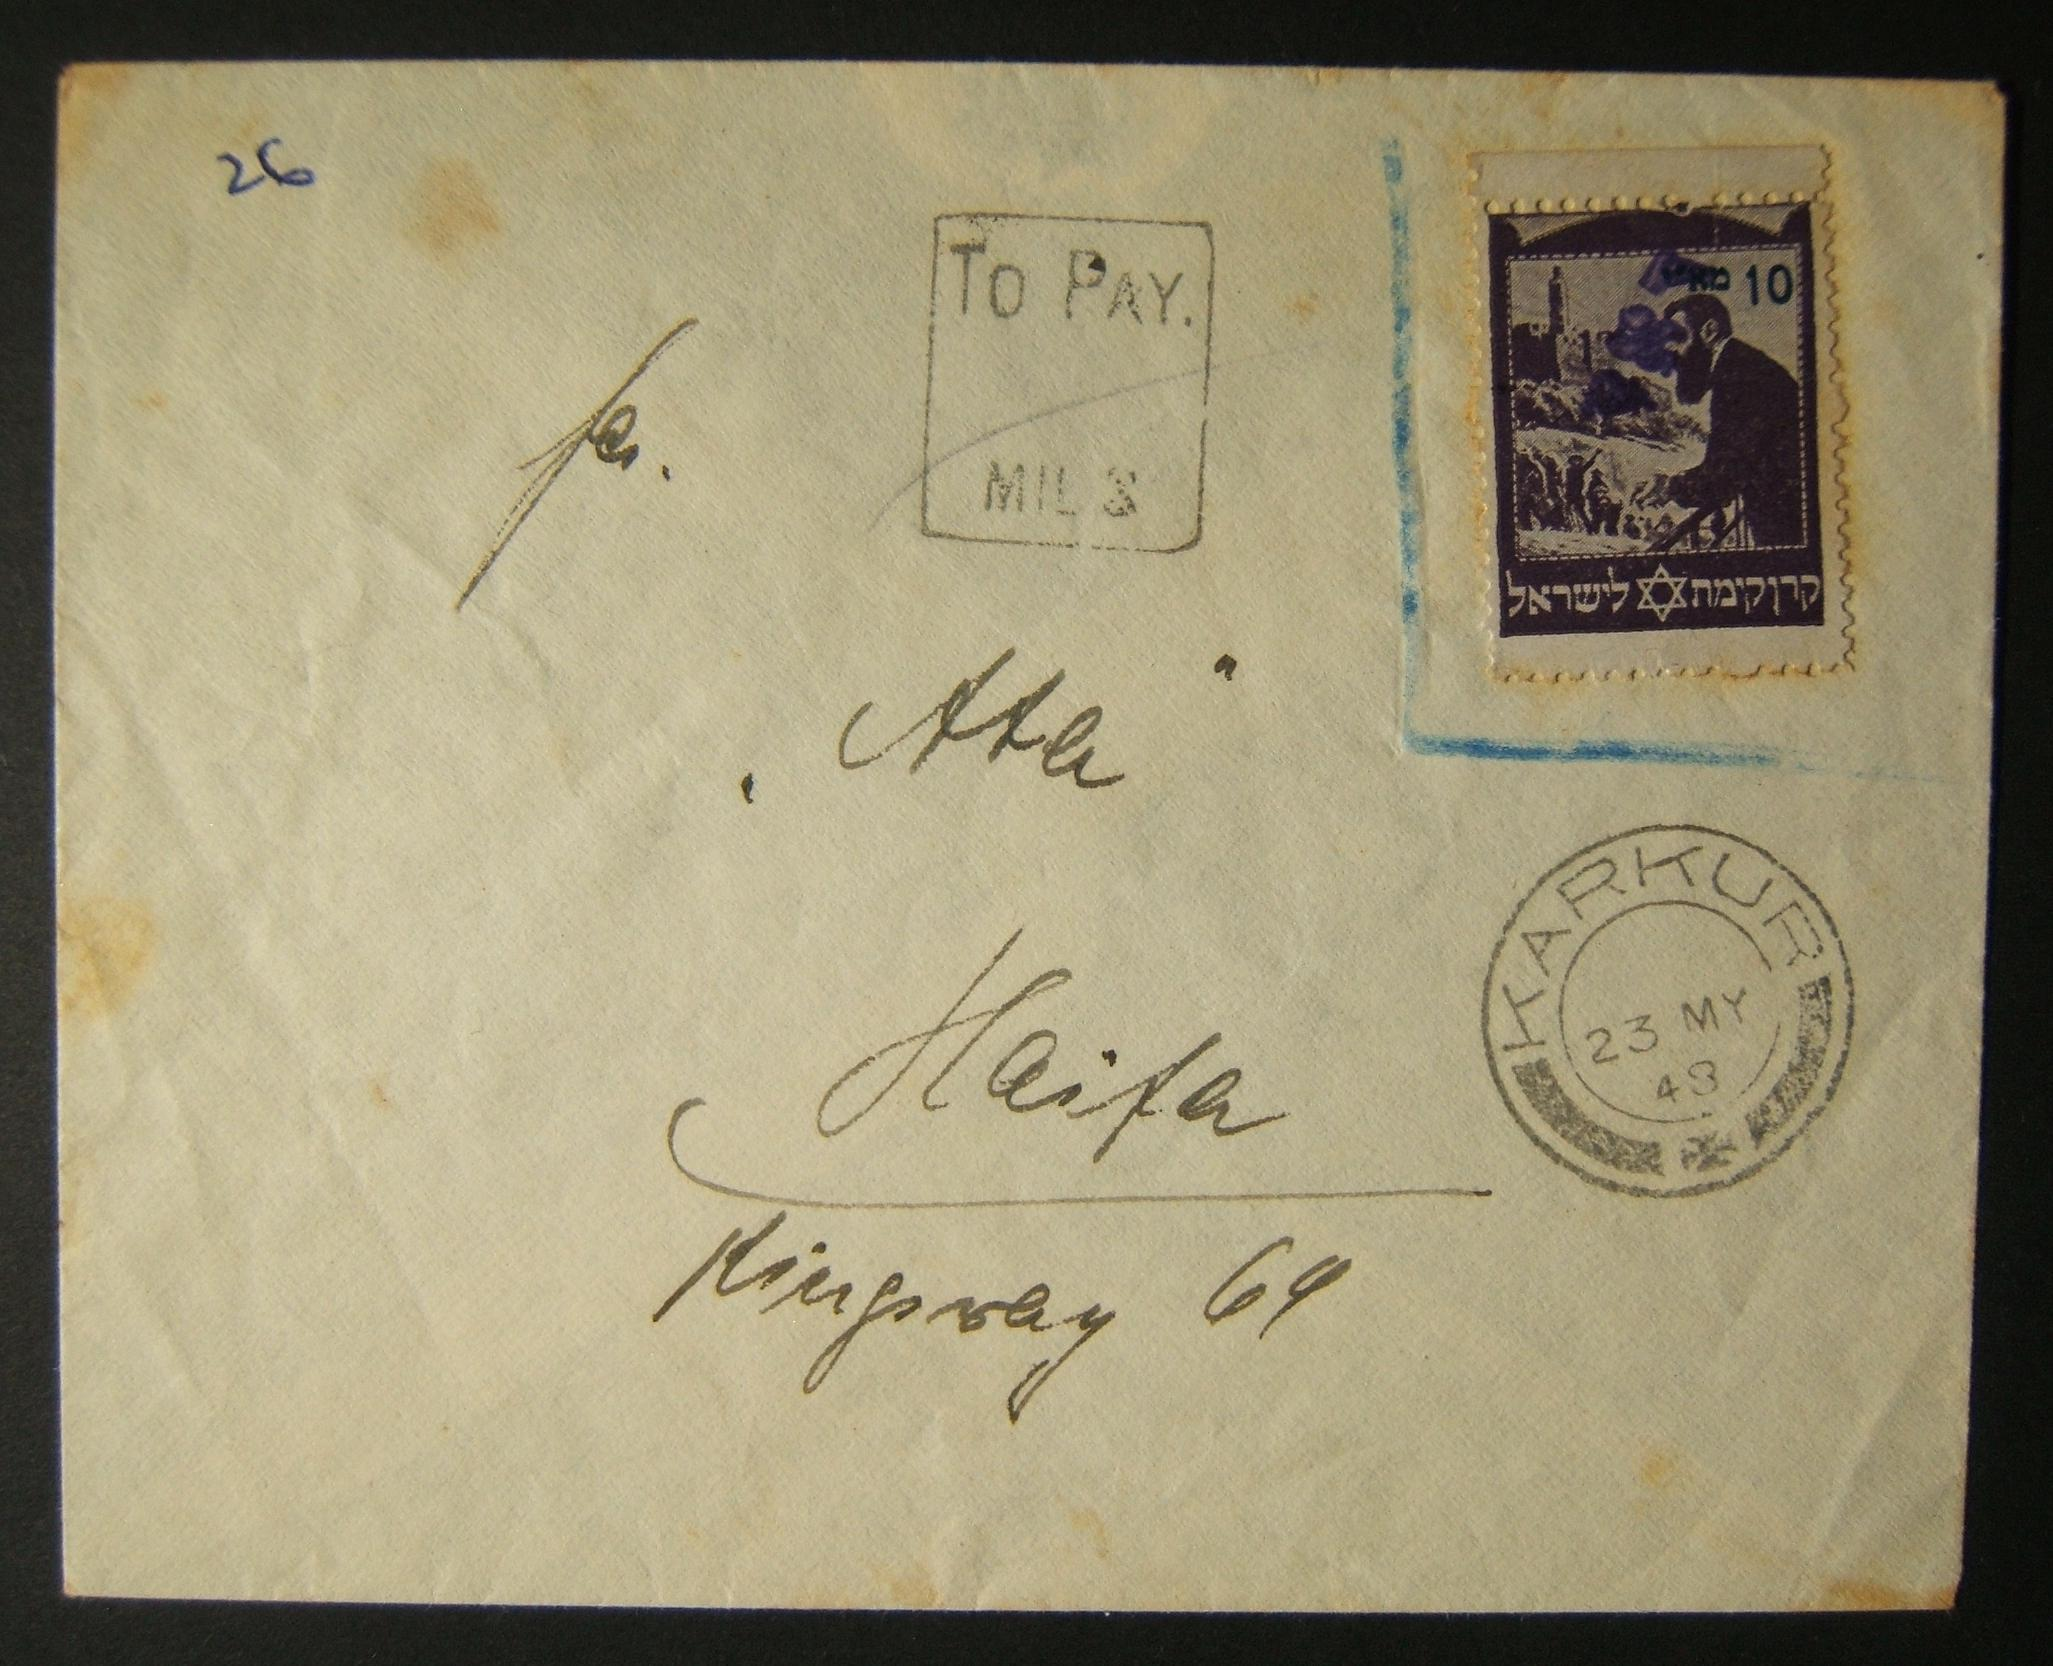 1948 waived taxed late interim mail: 23 MY 48 commercial cover ex KARKUR to HAIFA franked 10m using demonetized & invalid interim frank (Herzl Ba7) as of same day,